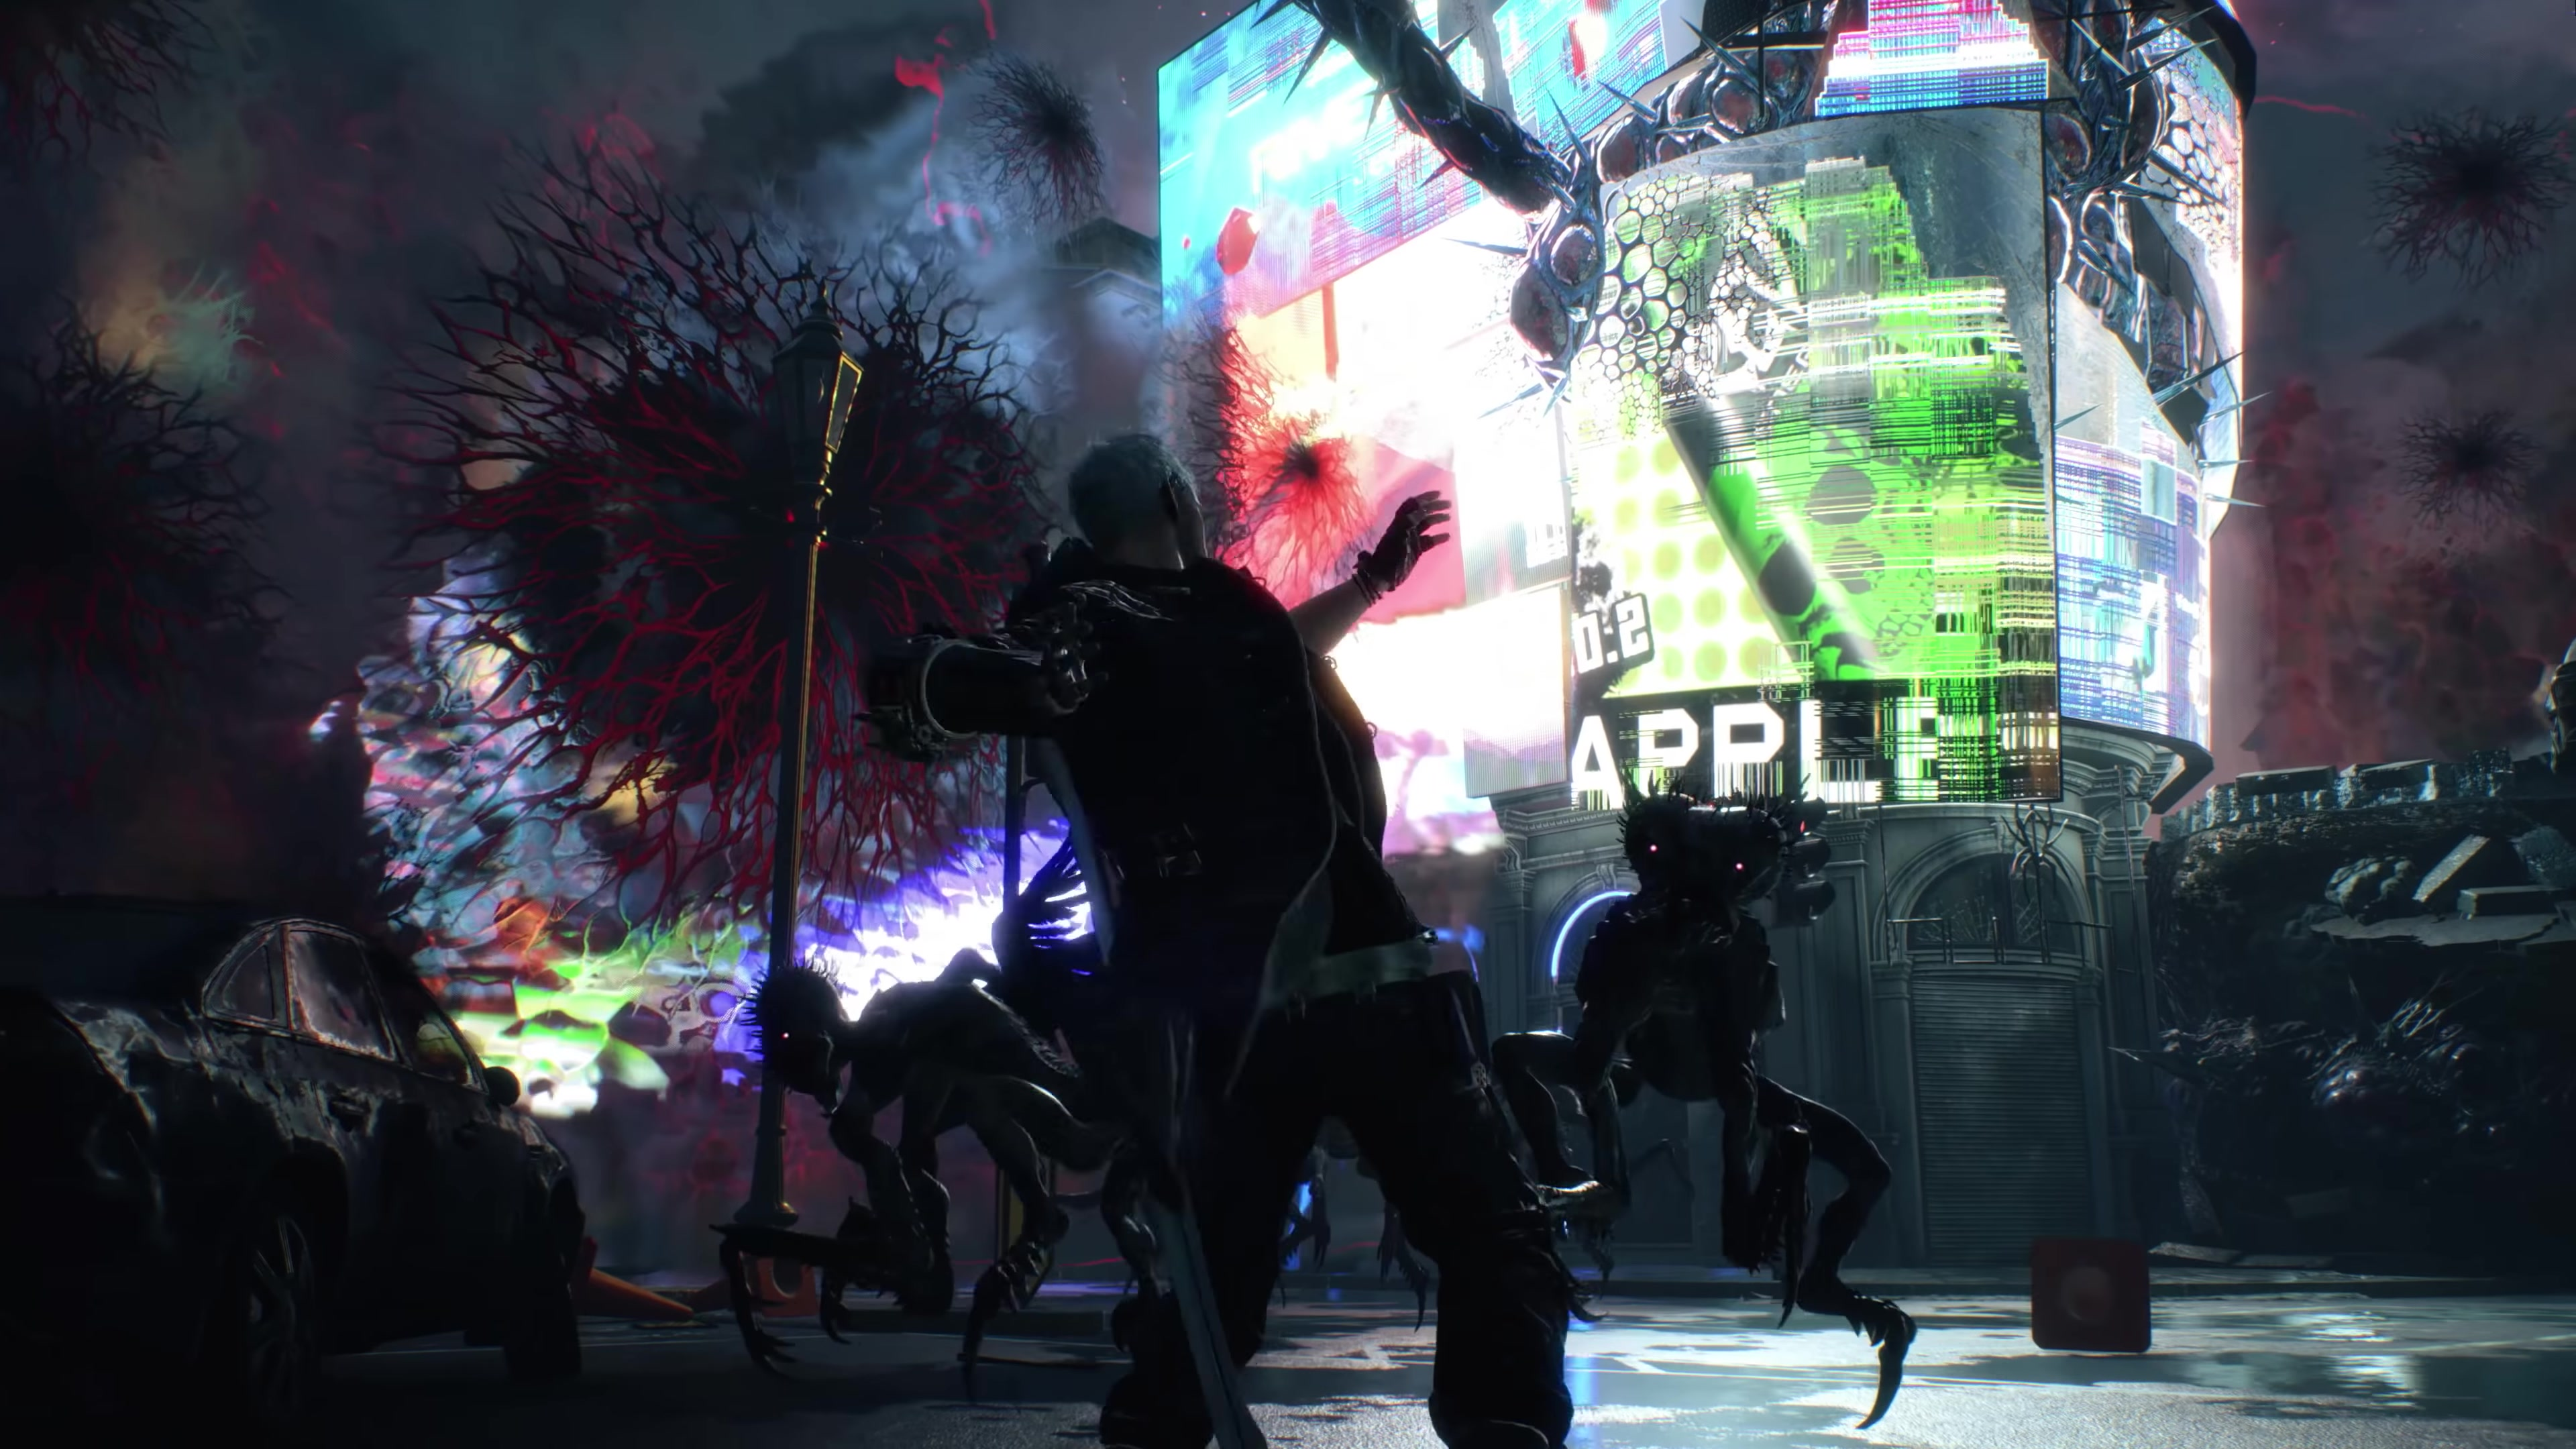 Devil May Cry 5 076.jpg - Devil May Cry 5